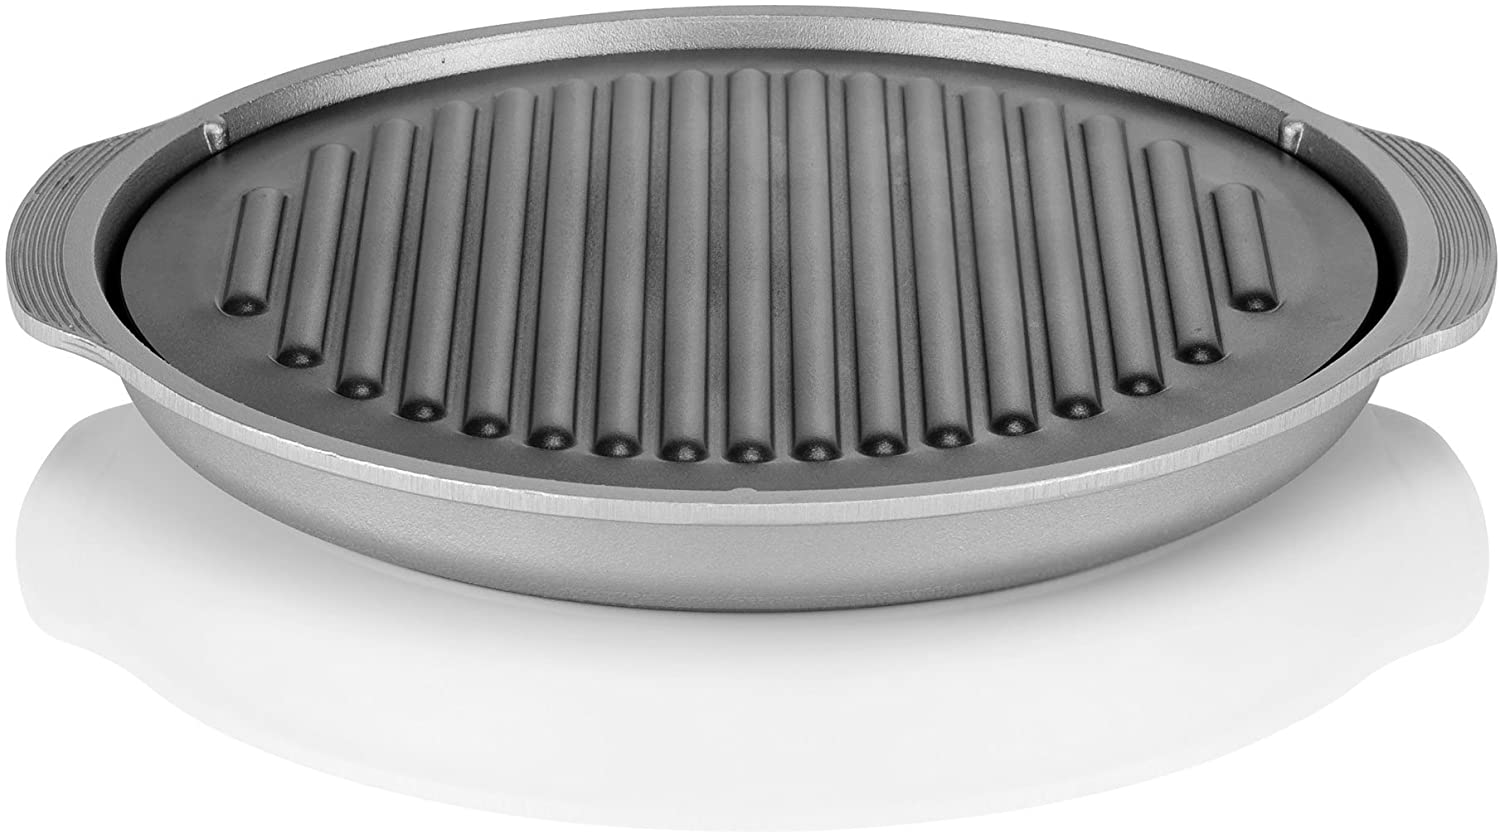 The True Stovetop Indoor Grill Pan Review